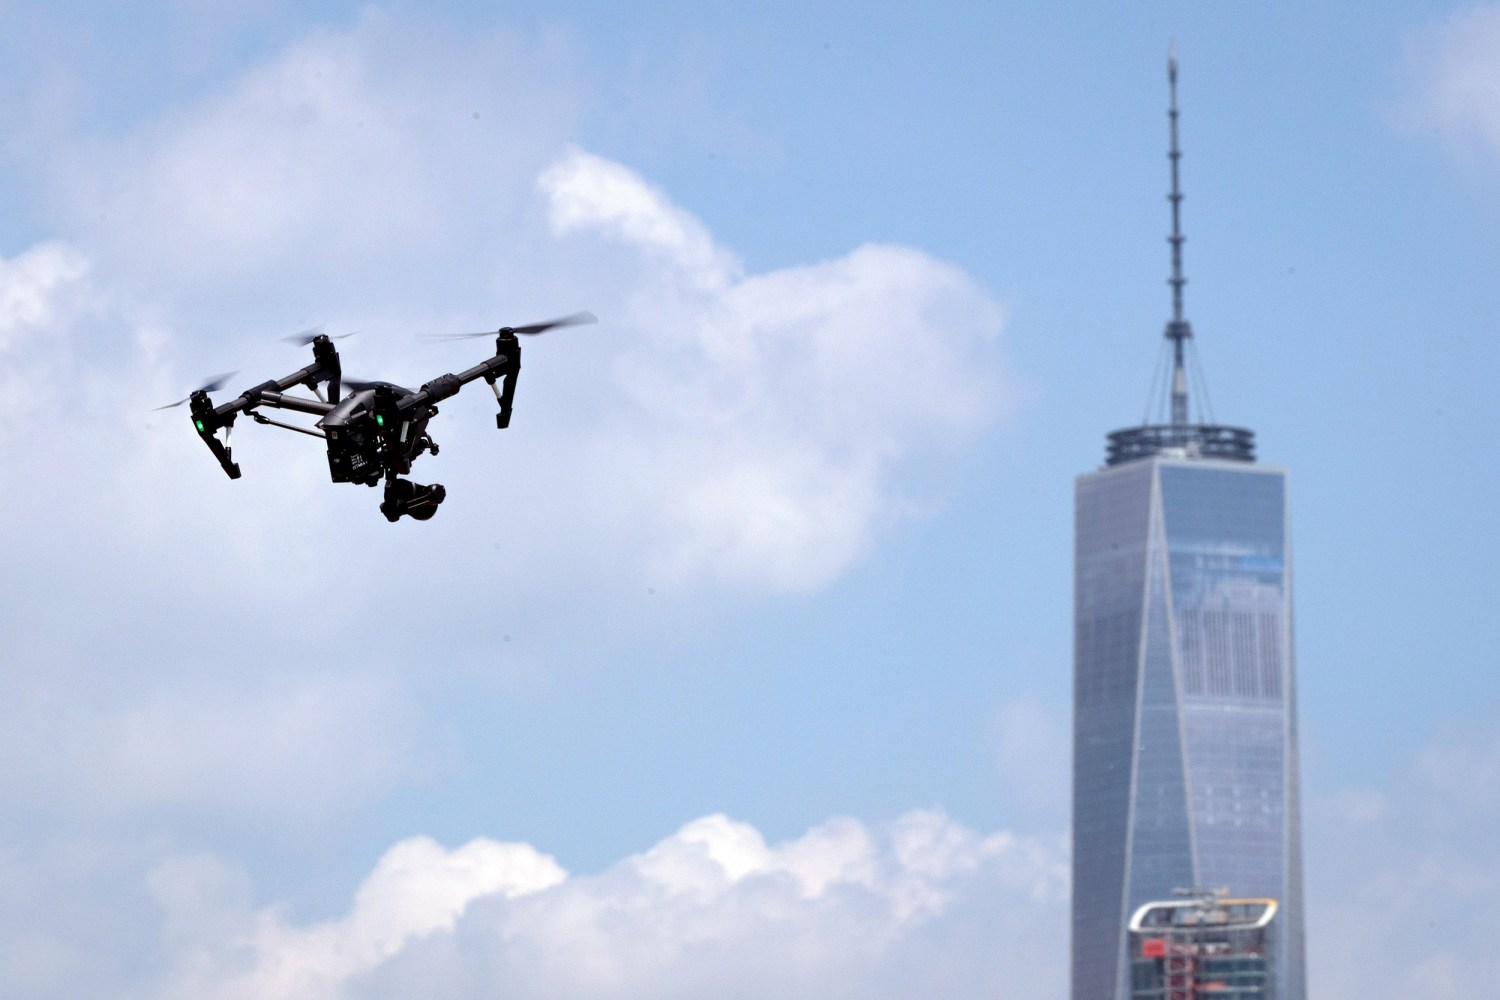 drone pilot jobs with Trump Launch Drone Pilot Program Neighborhood Near You N814166 on Funflydetails in addition DAy30 as well The Blue Angels Fly Over A Beach besides Hdimagegallery as well Wonderful Drone Light Show.